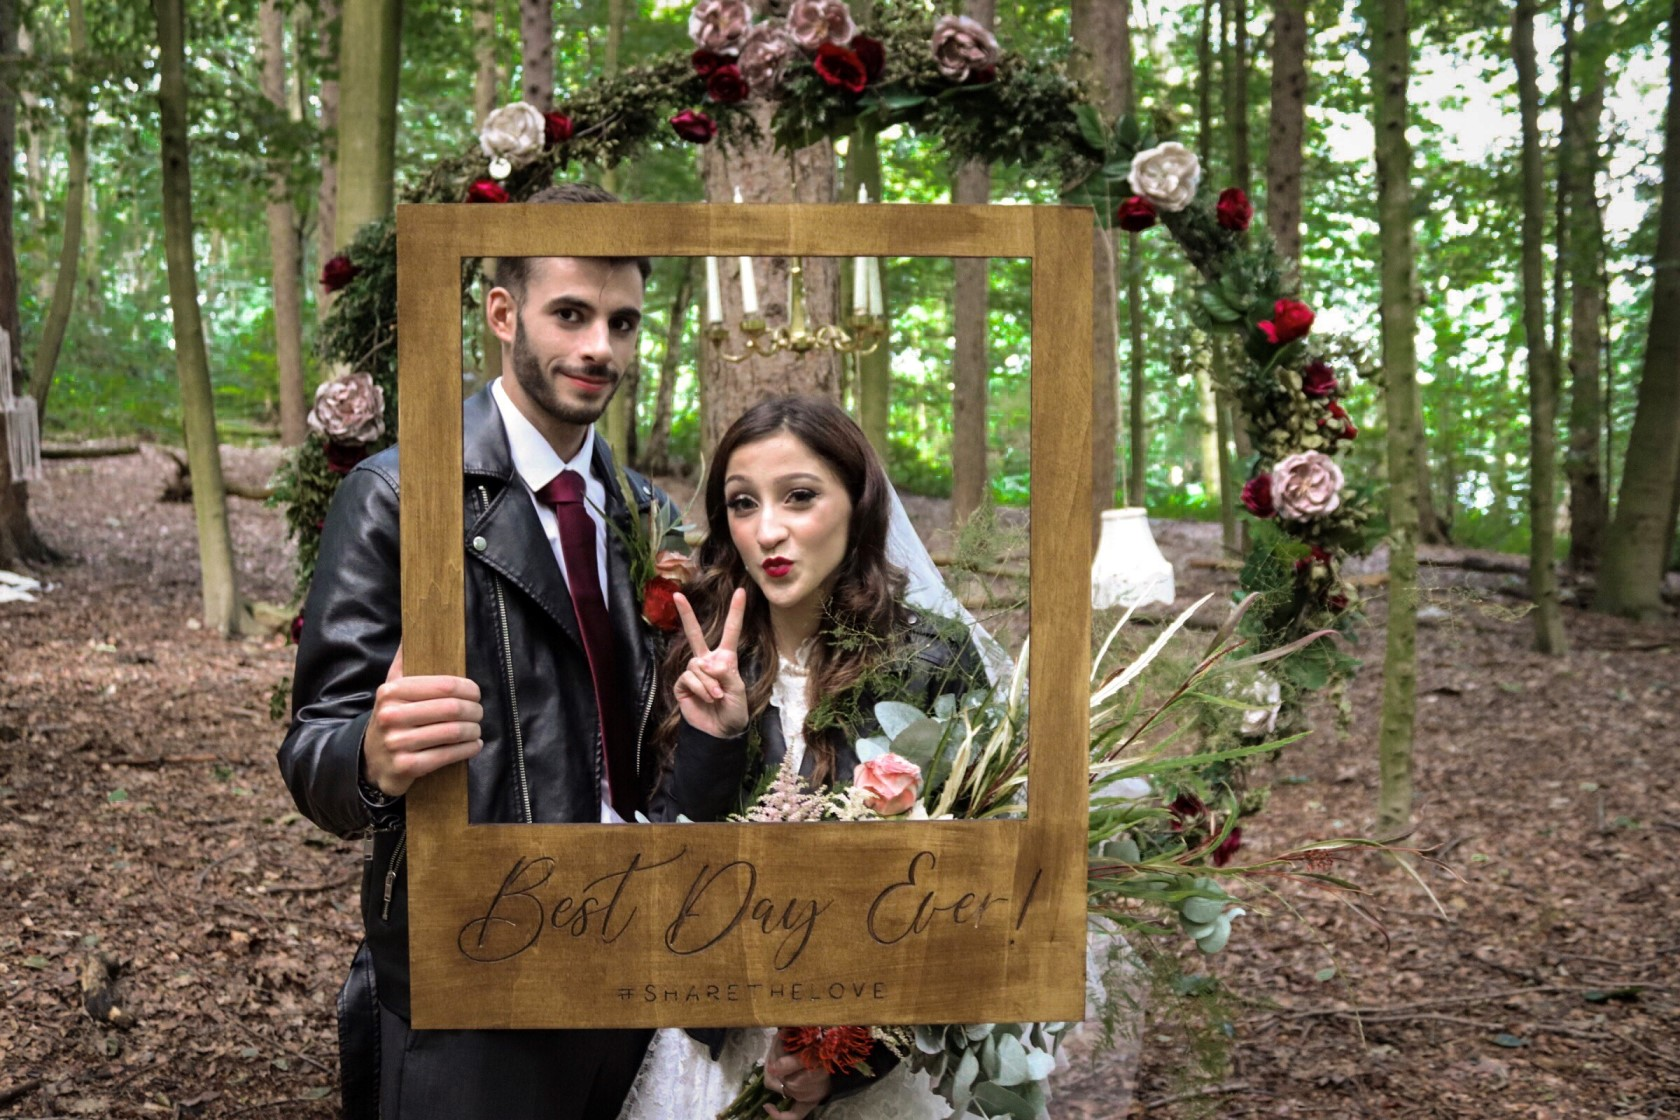 Cole Photography- Boho Punk Wedding- Unconventional Wedding- Quirky Wedding- Alternative Wedding- Unique Wedding Ideas- Unique Bridal Wear- Unique Wedding Dress- Woodland Wedding- Boho Wedding- Punk Wedding